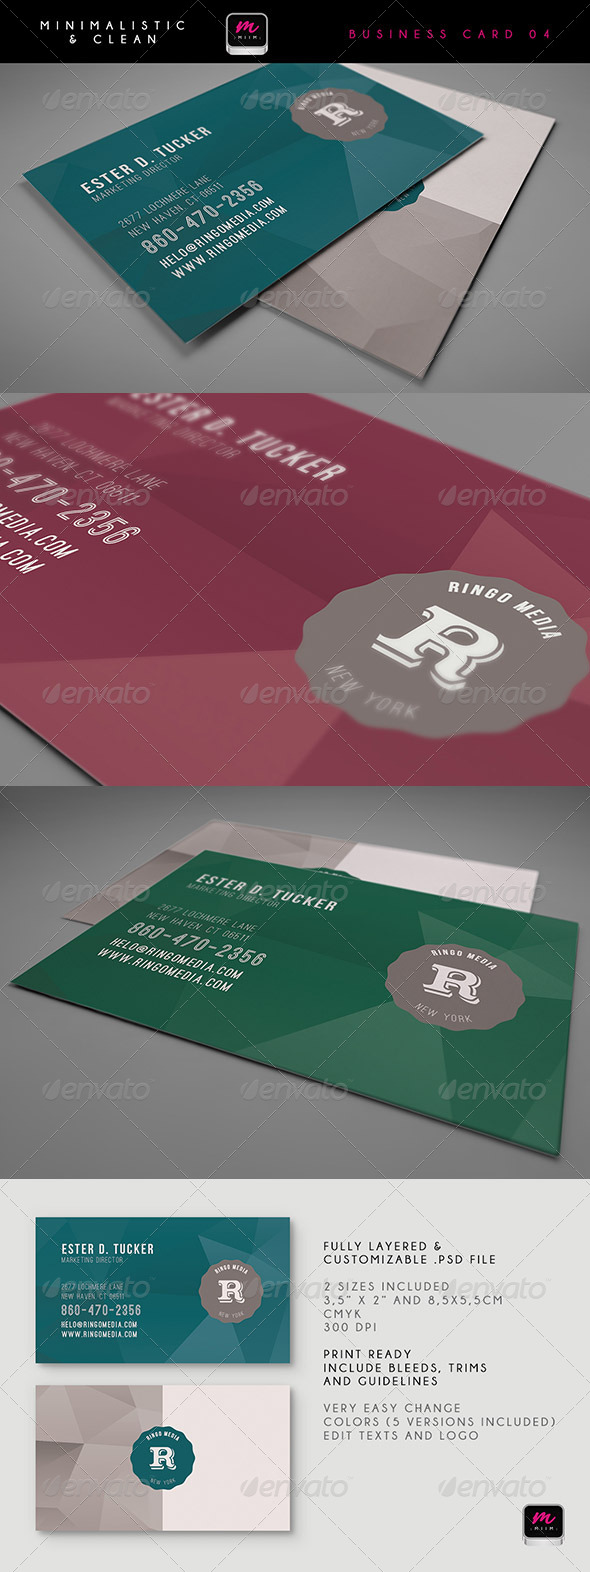 Clean Business Card Template 05 - Creative Business Cards